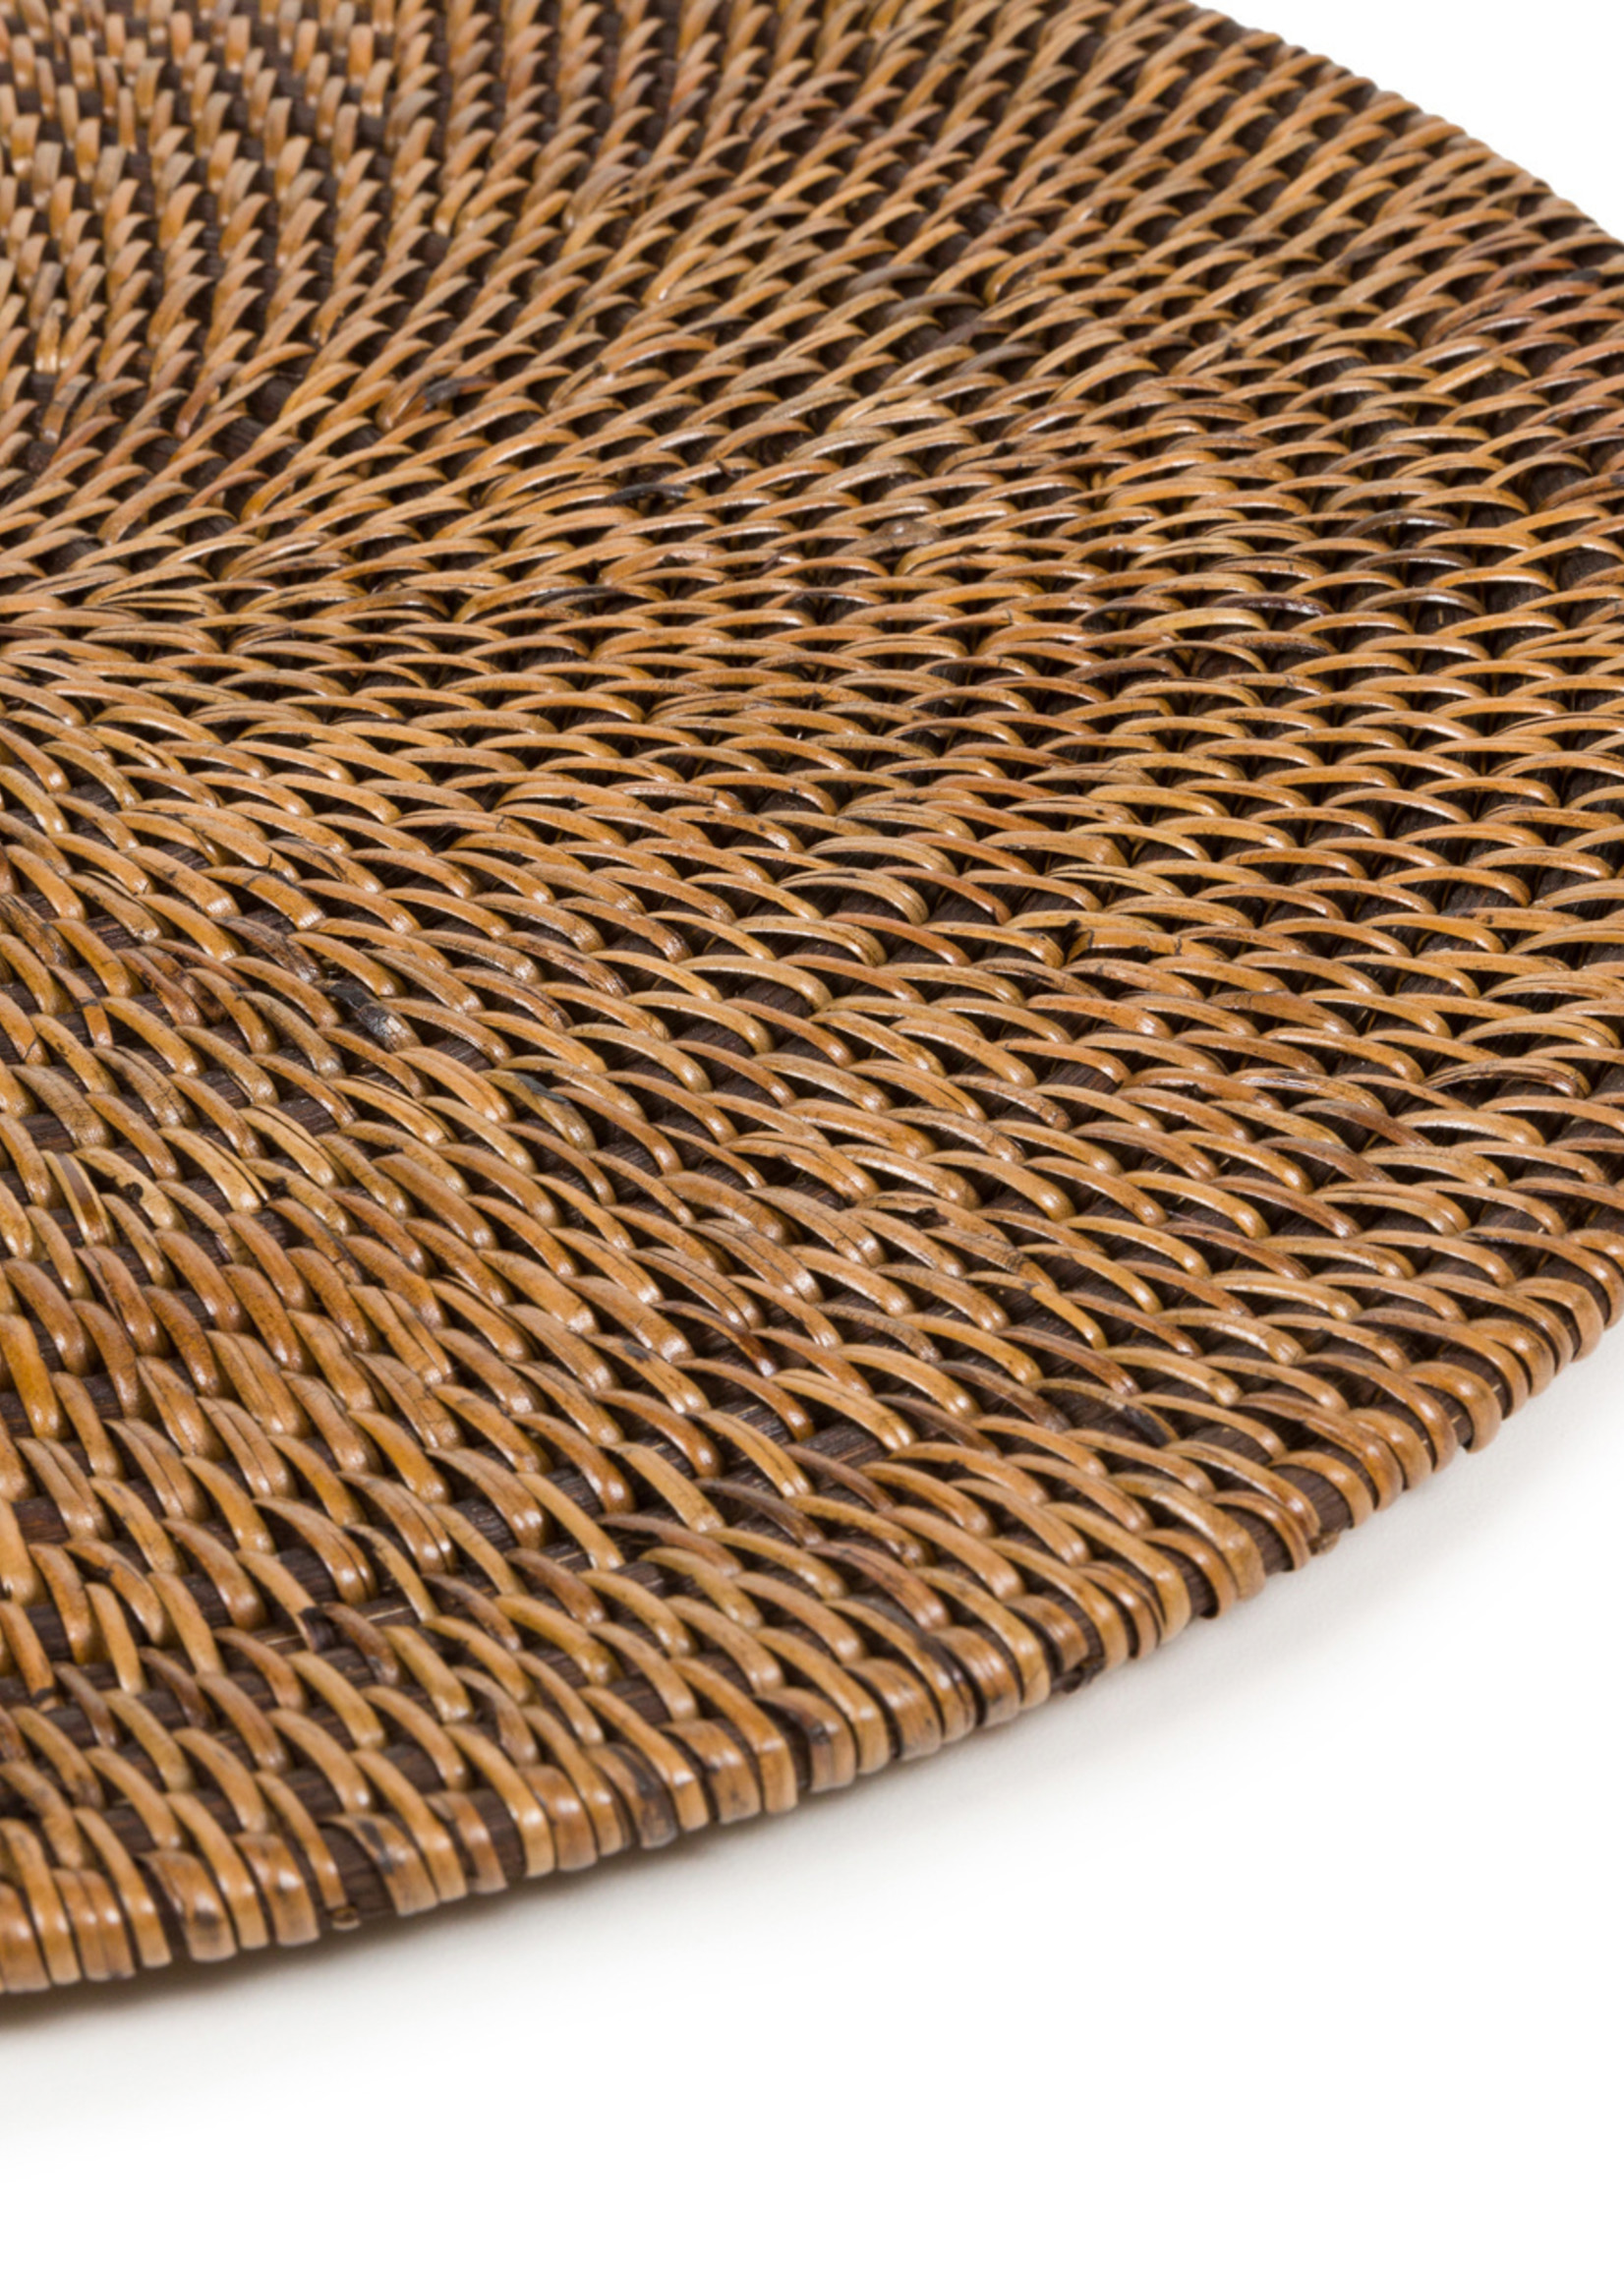 The Colonial Placemat - Natural Brown